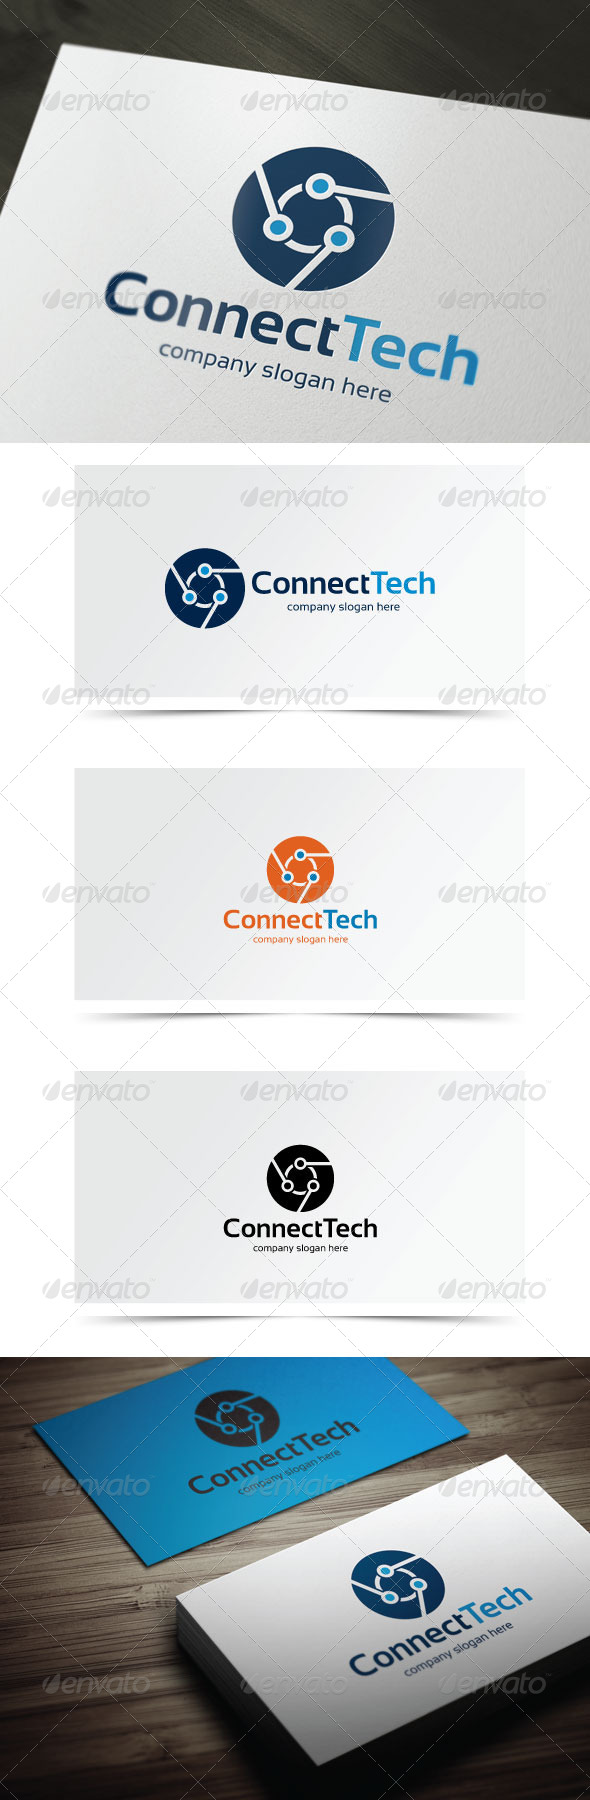 Connect Tech